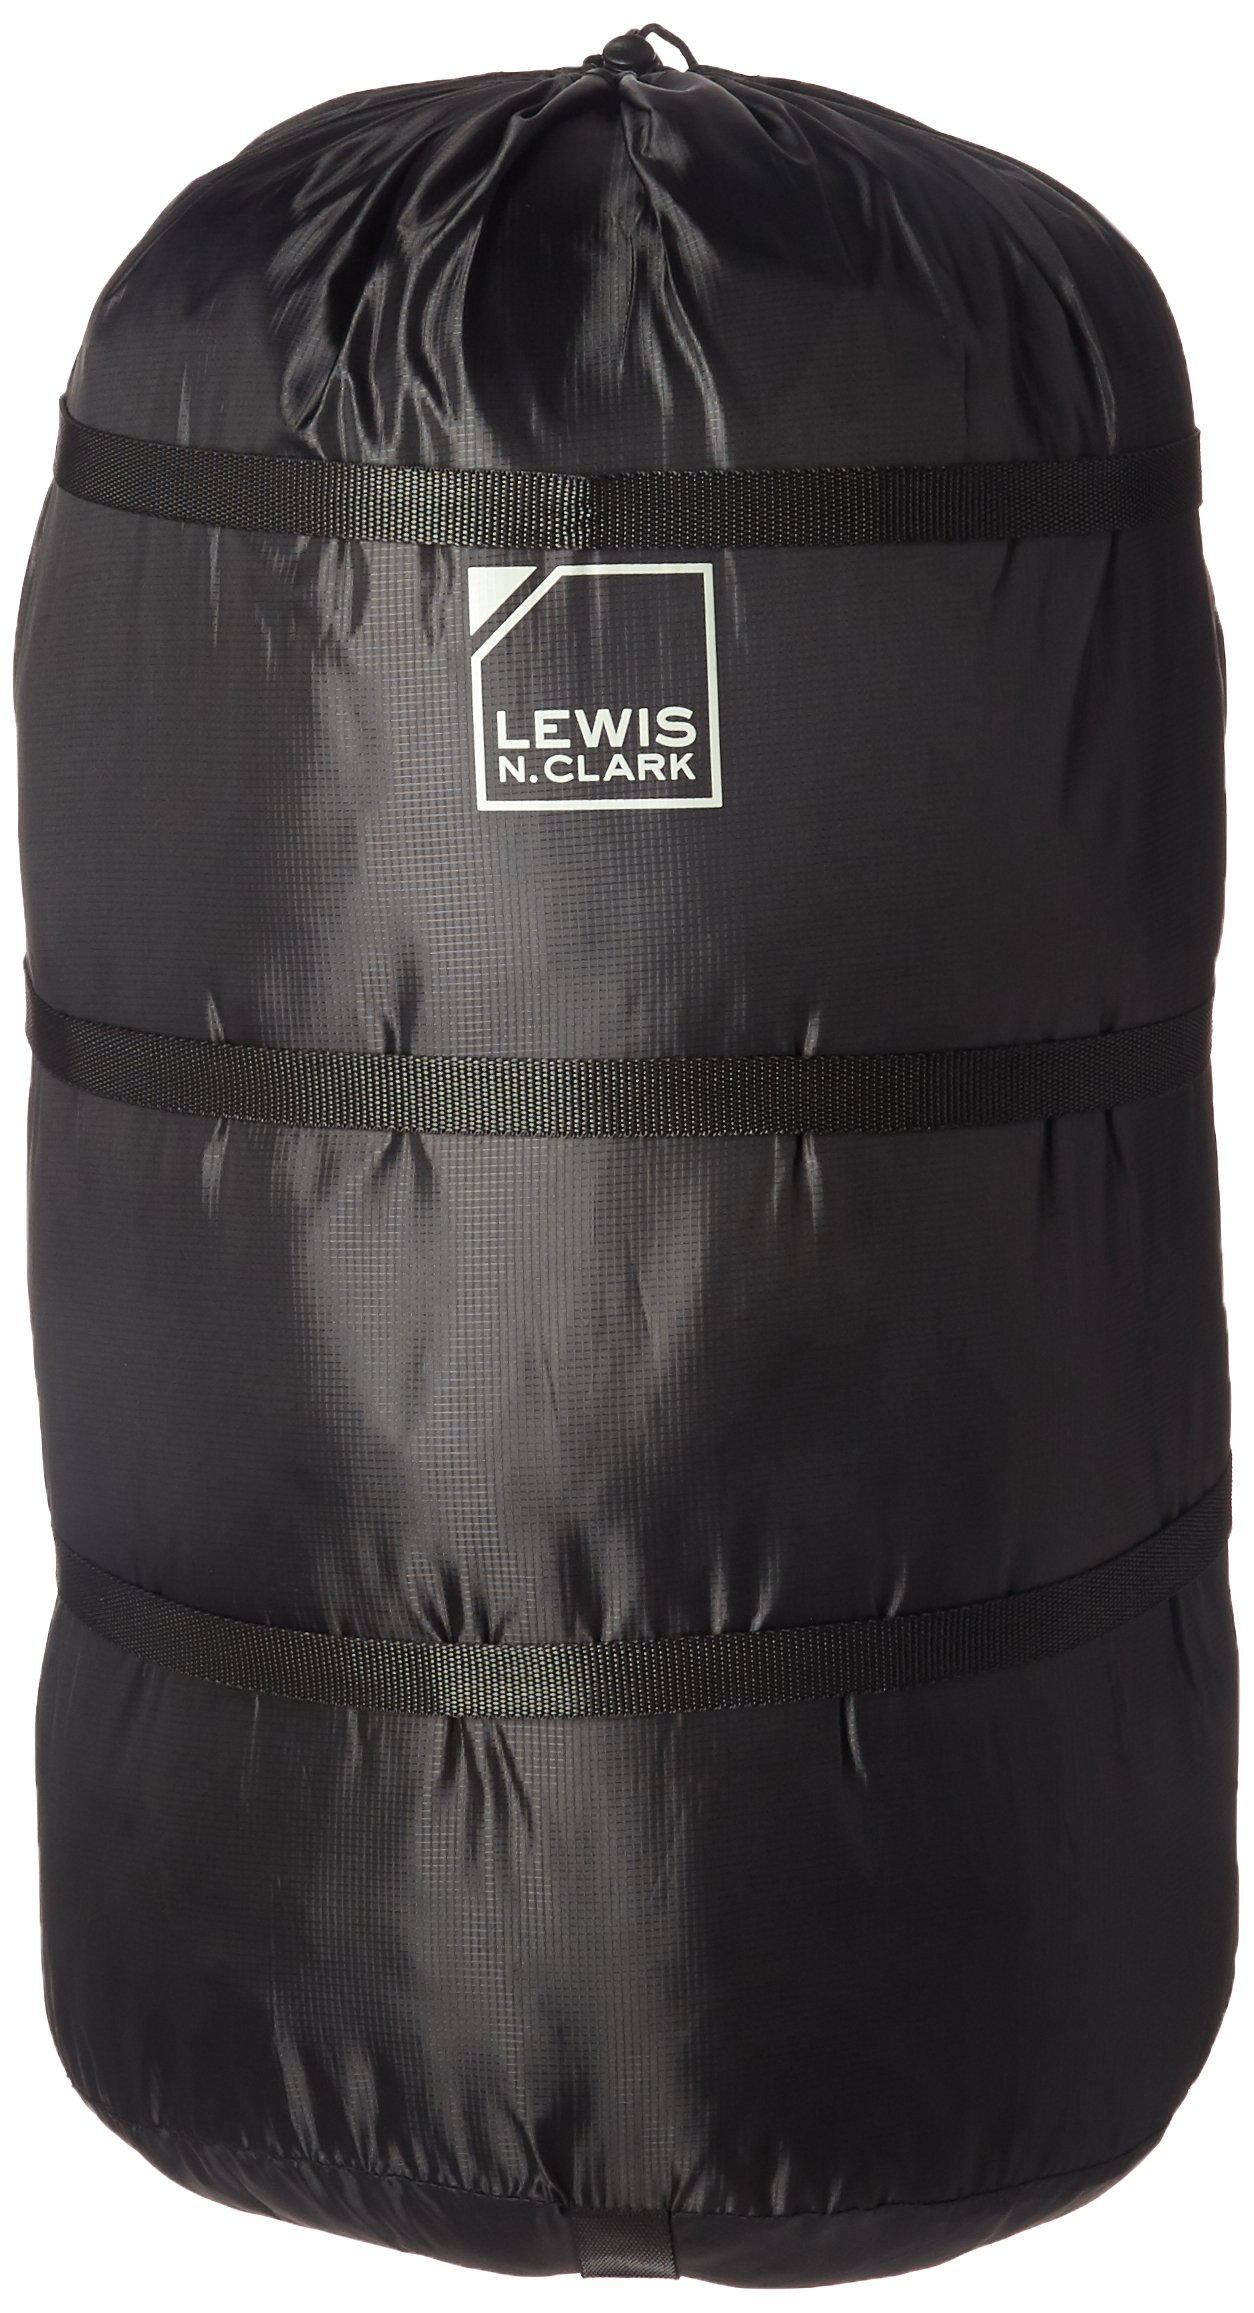 Lewis N. Clark Compression 13'' X 25'' Drawstring Bag, Black, One Size